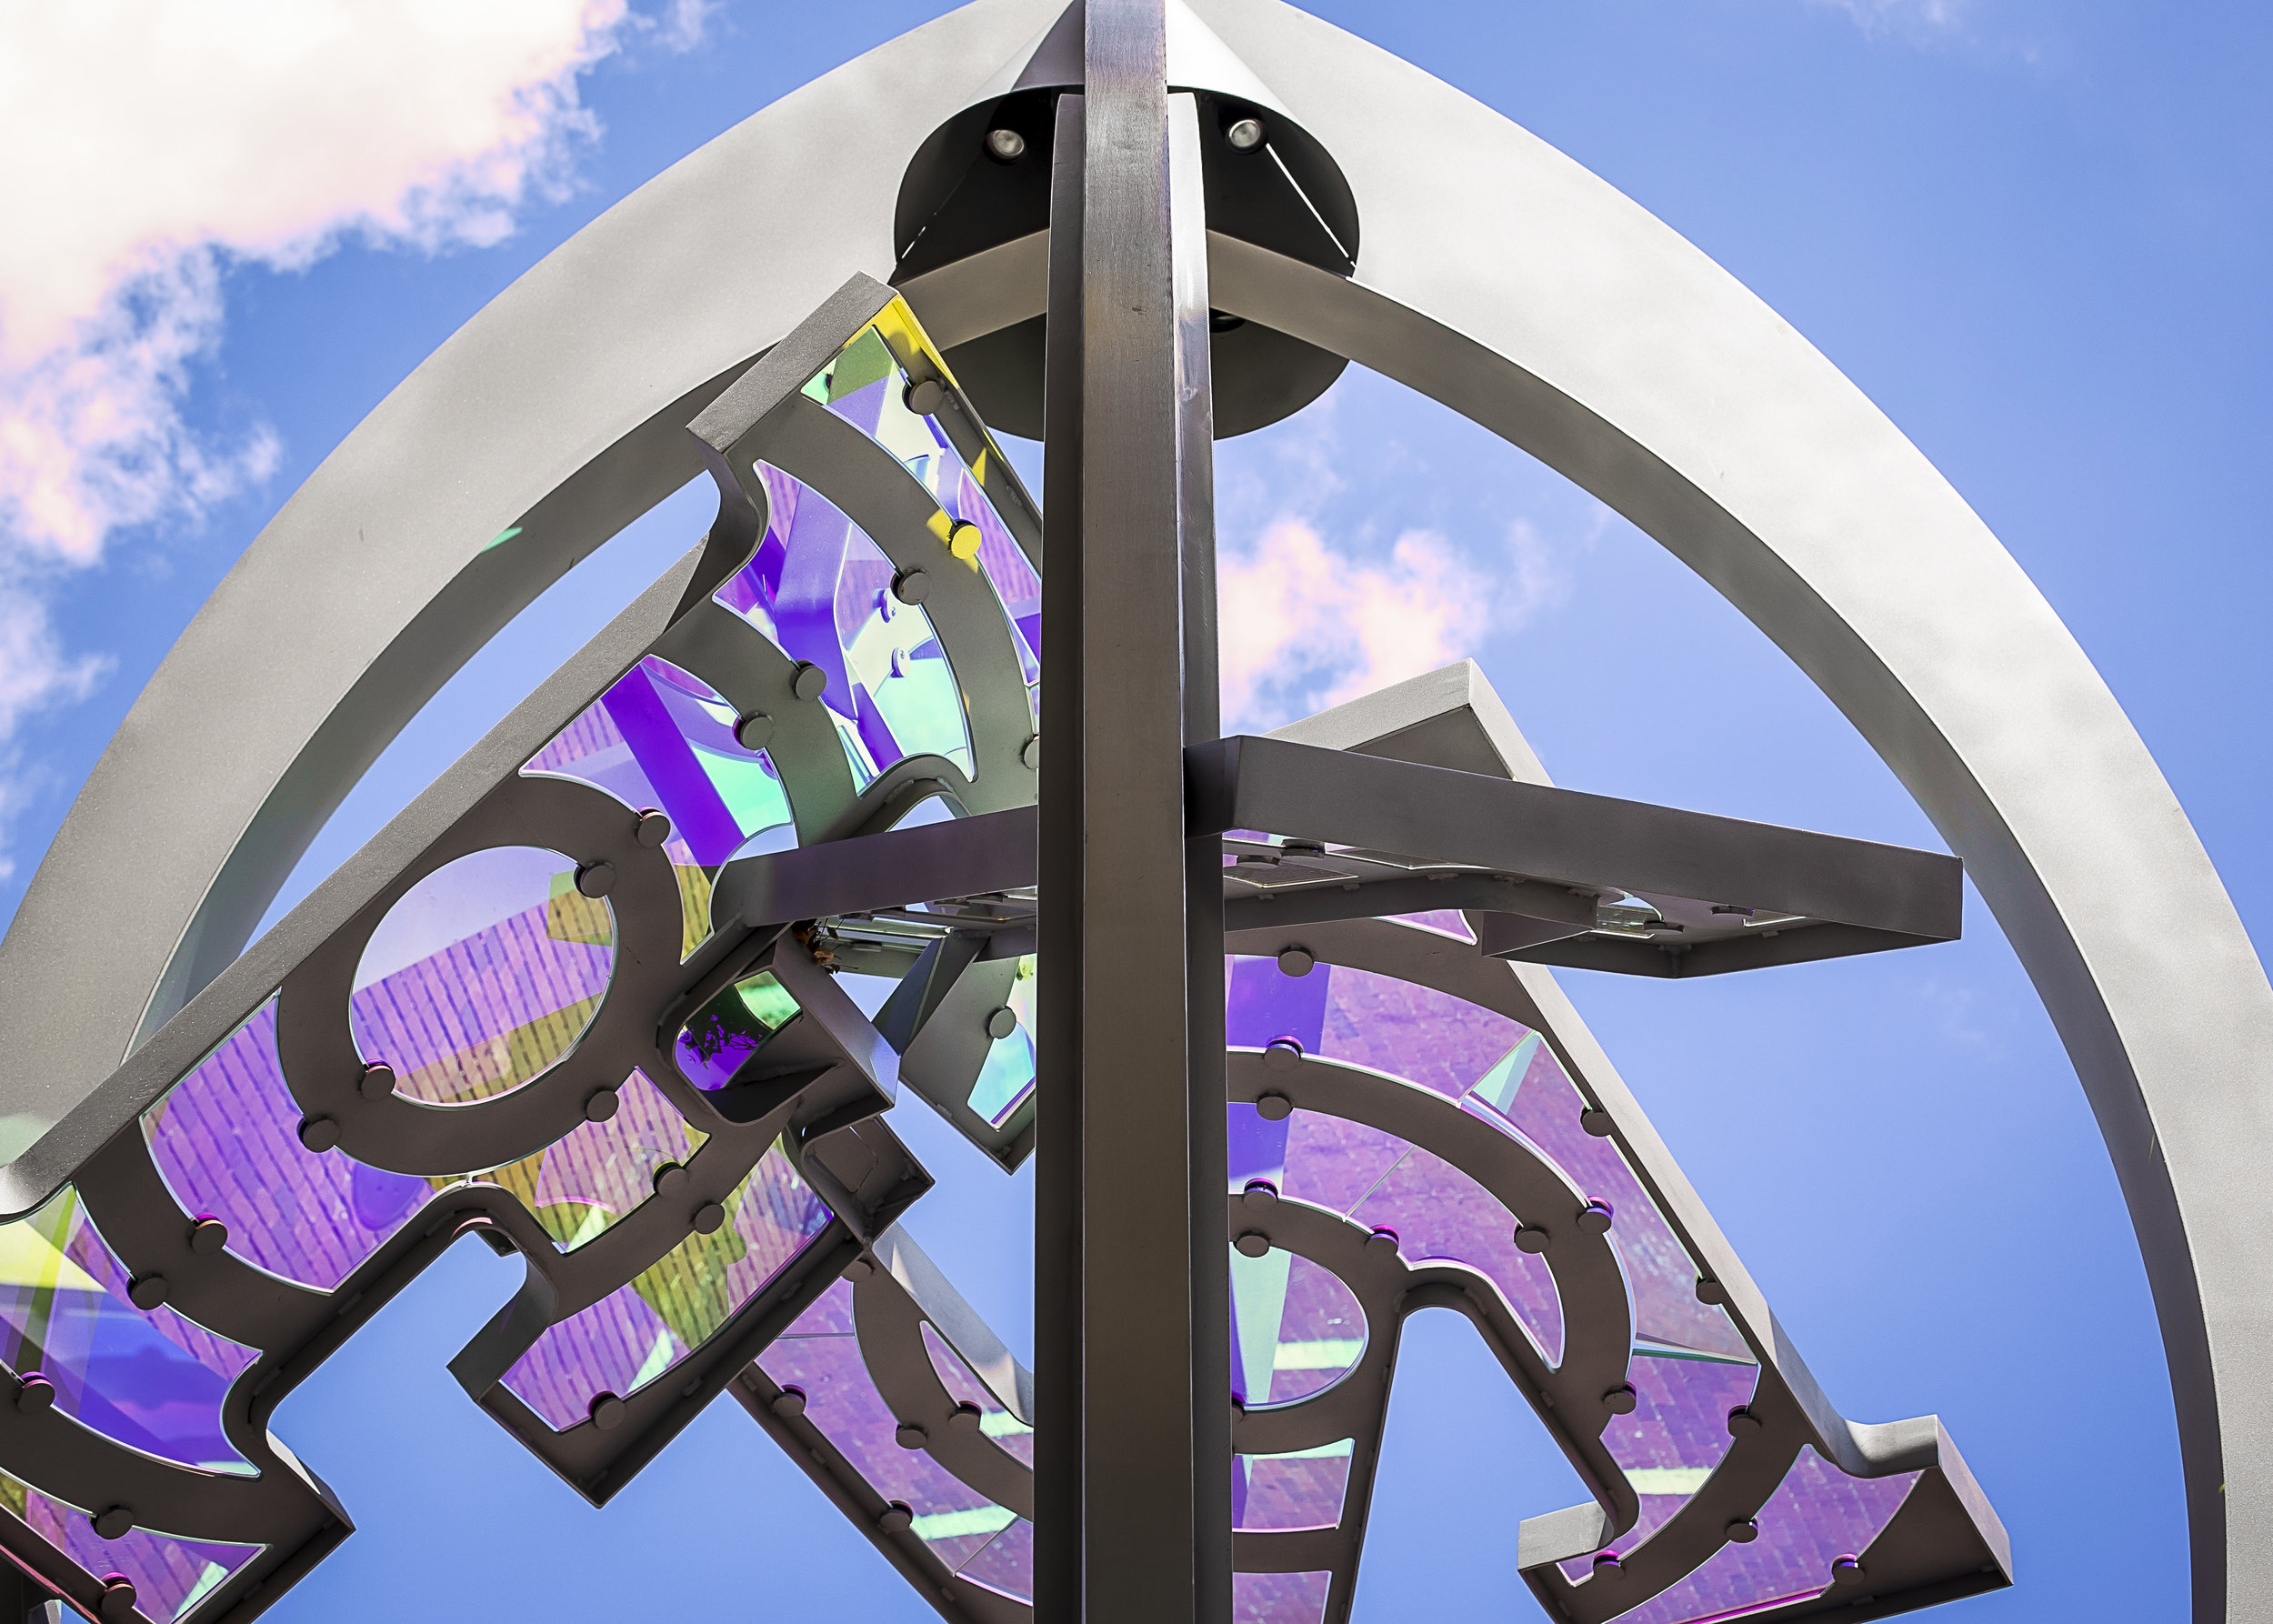 canton_ohio_birth of the nfl_michael clapper_public art services_j grant projects_18.jpg